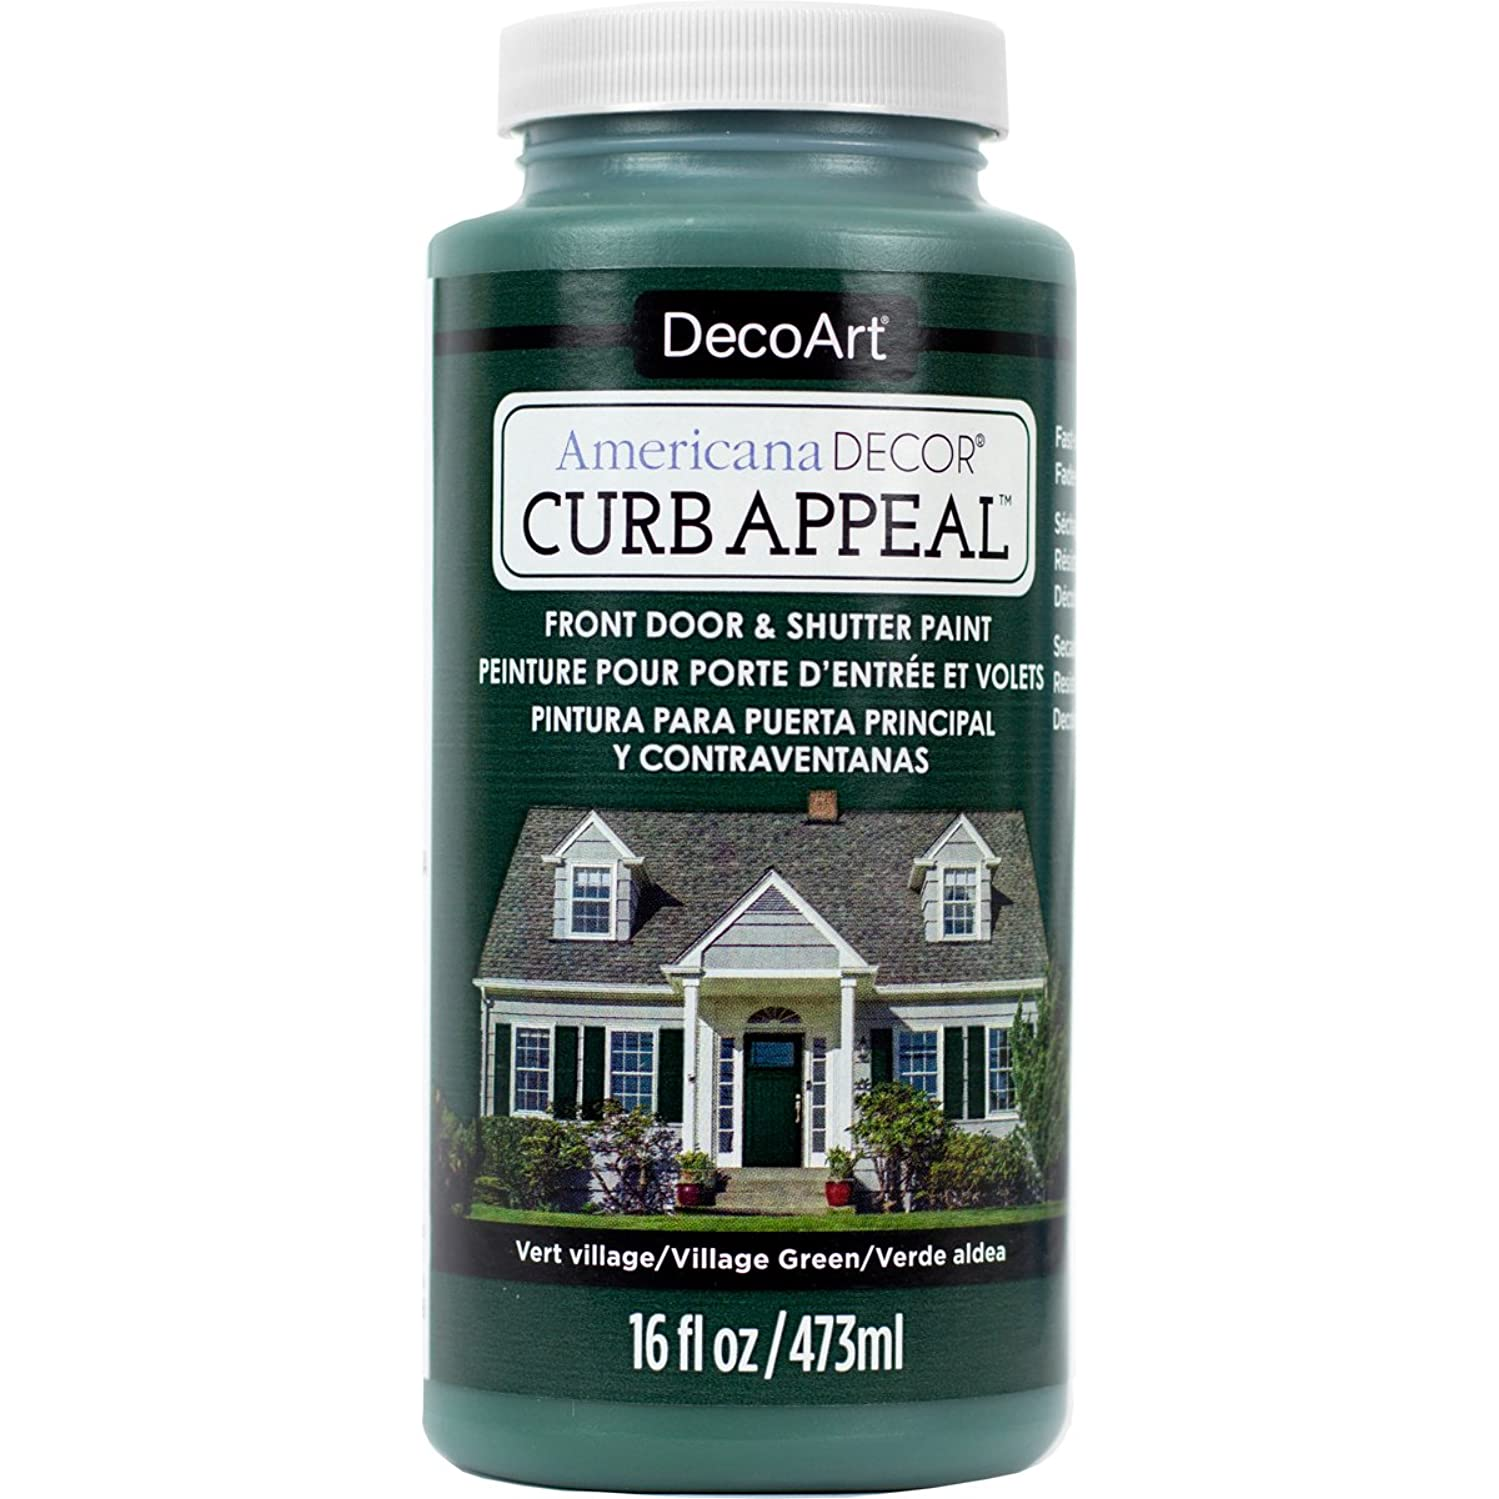 DecoArt Americana Decor Curb Appeal 16oz Villaggrn CurbAppeal16oz